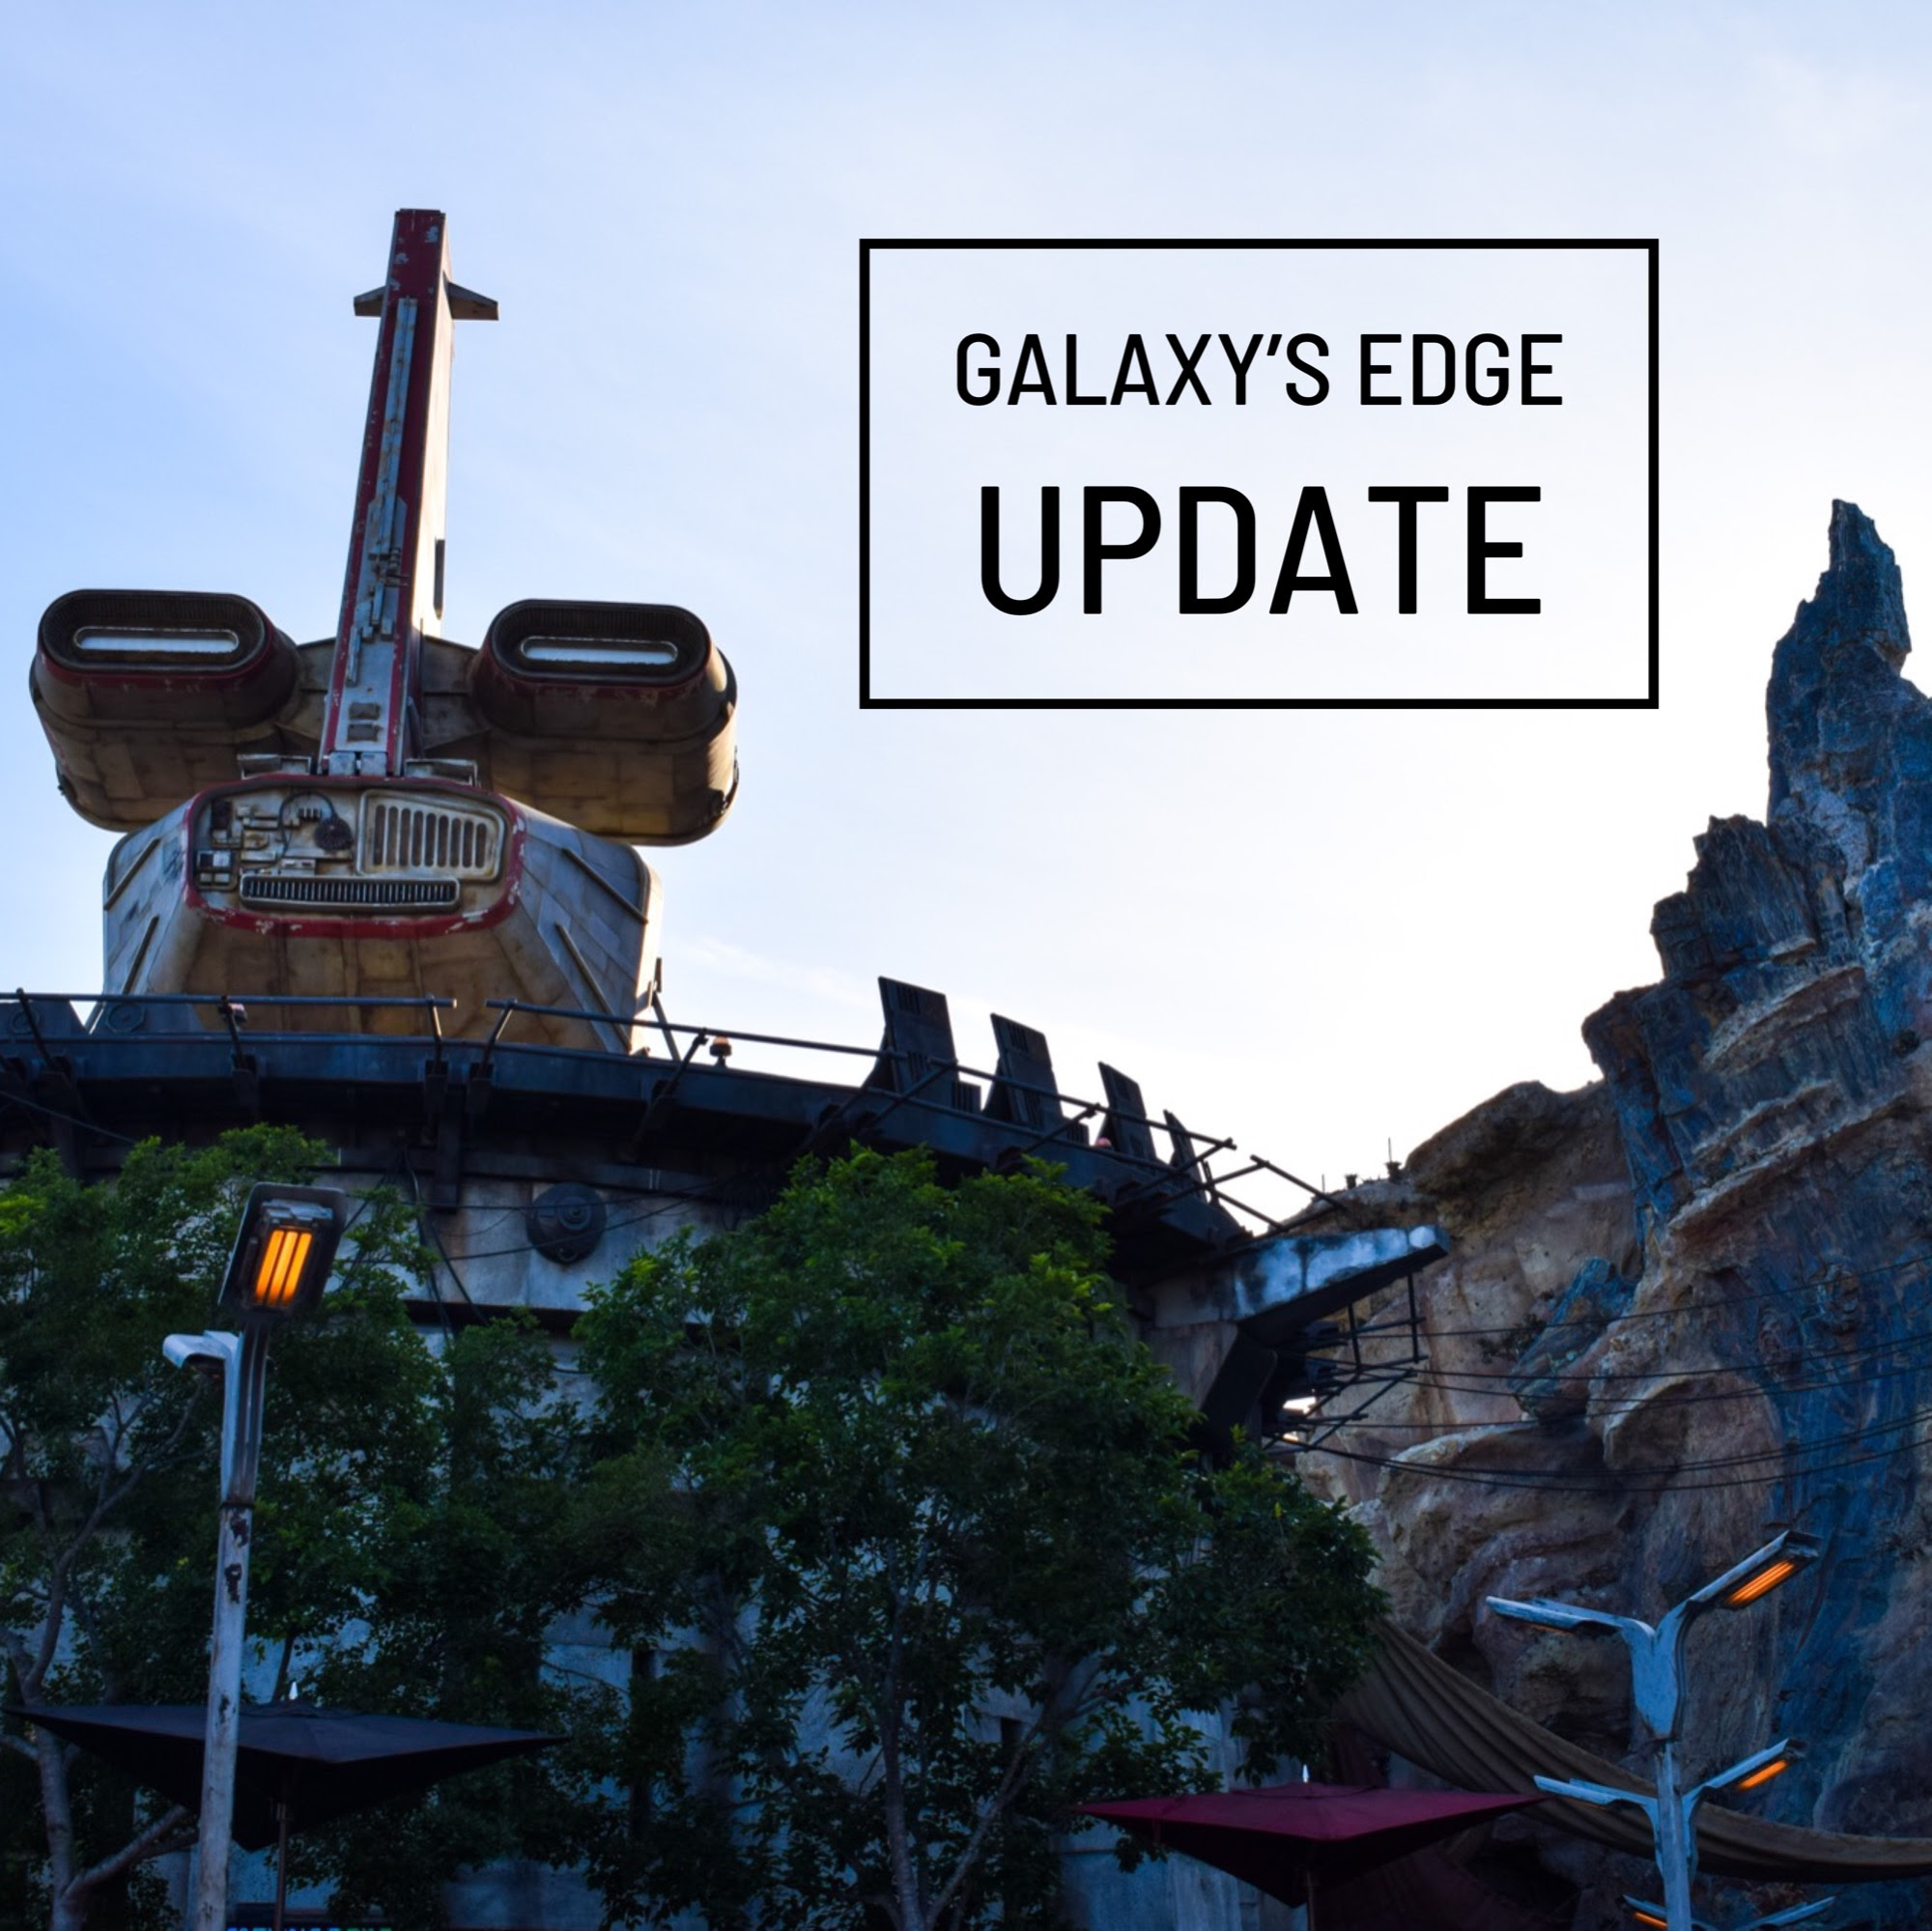 Star Wars: Galaxy's Edge Update - Docking Bay 7 & Oga's Cantina Re-Opening, Legacy Lightsaber Stock, and more! | Anakin and His Angel